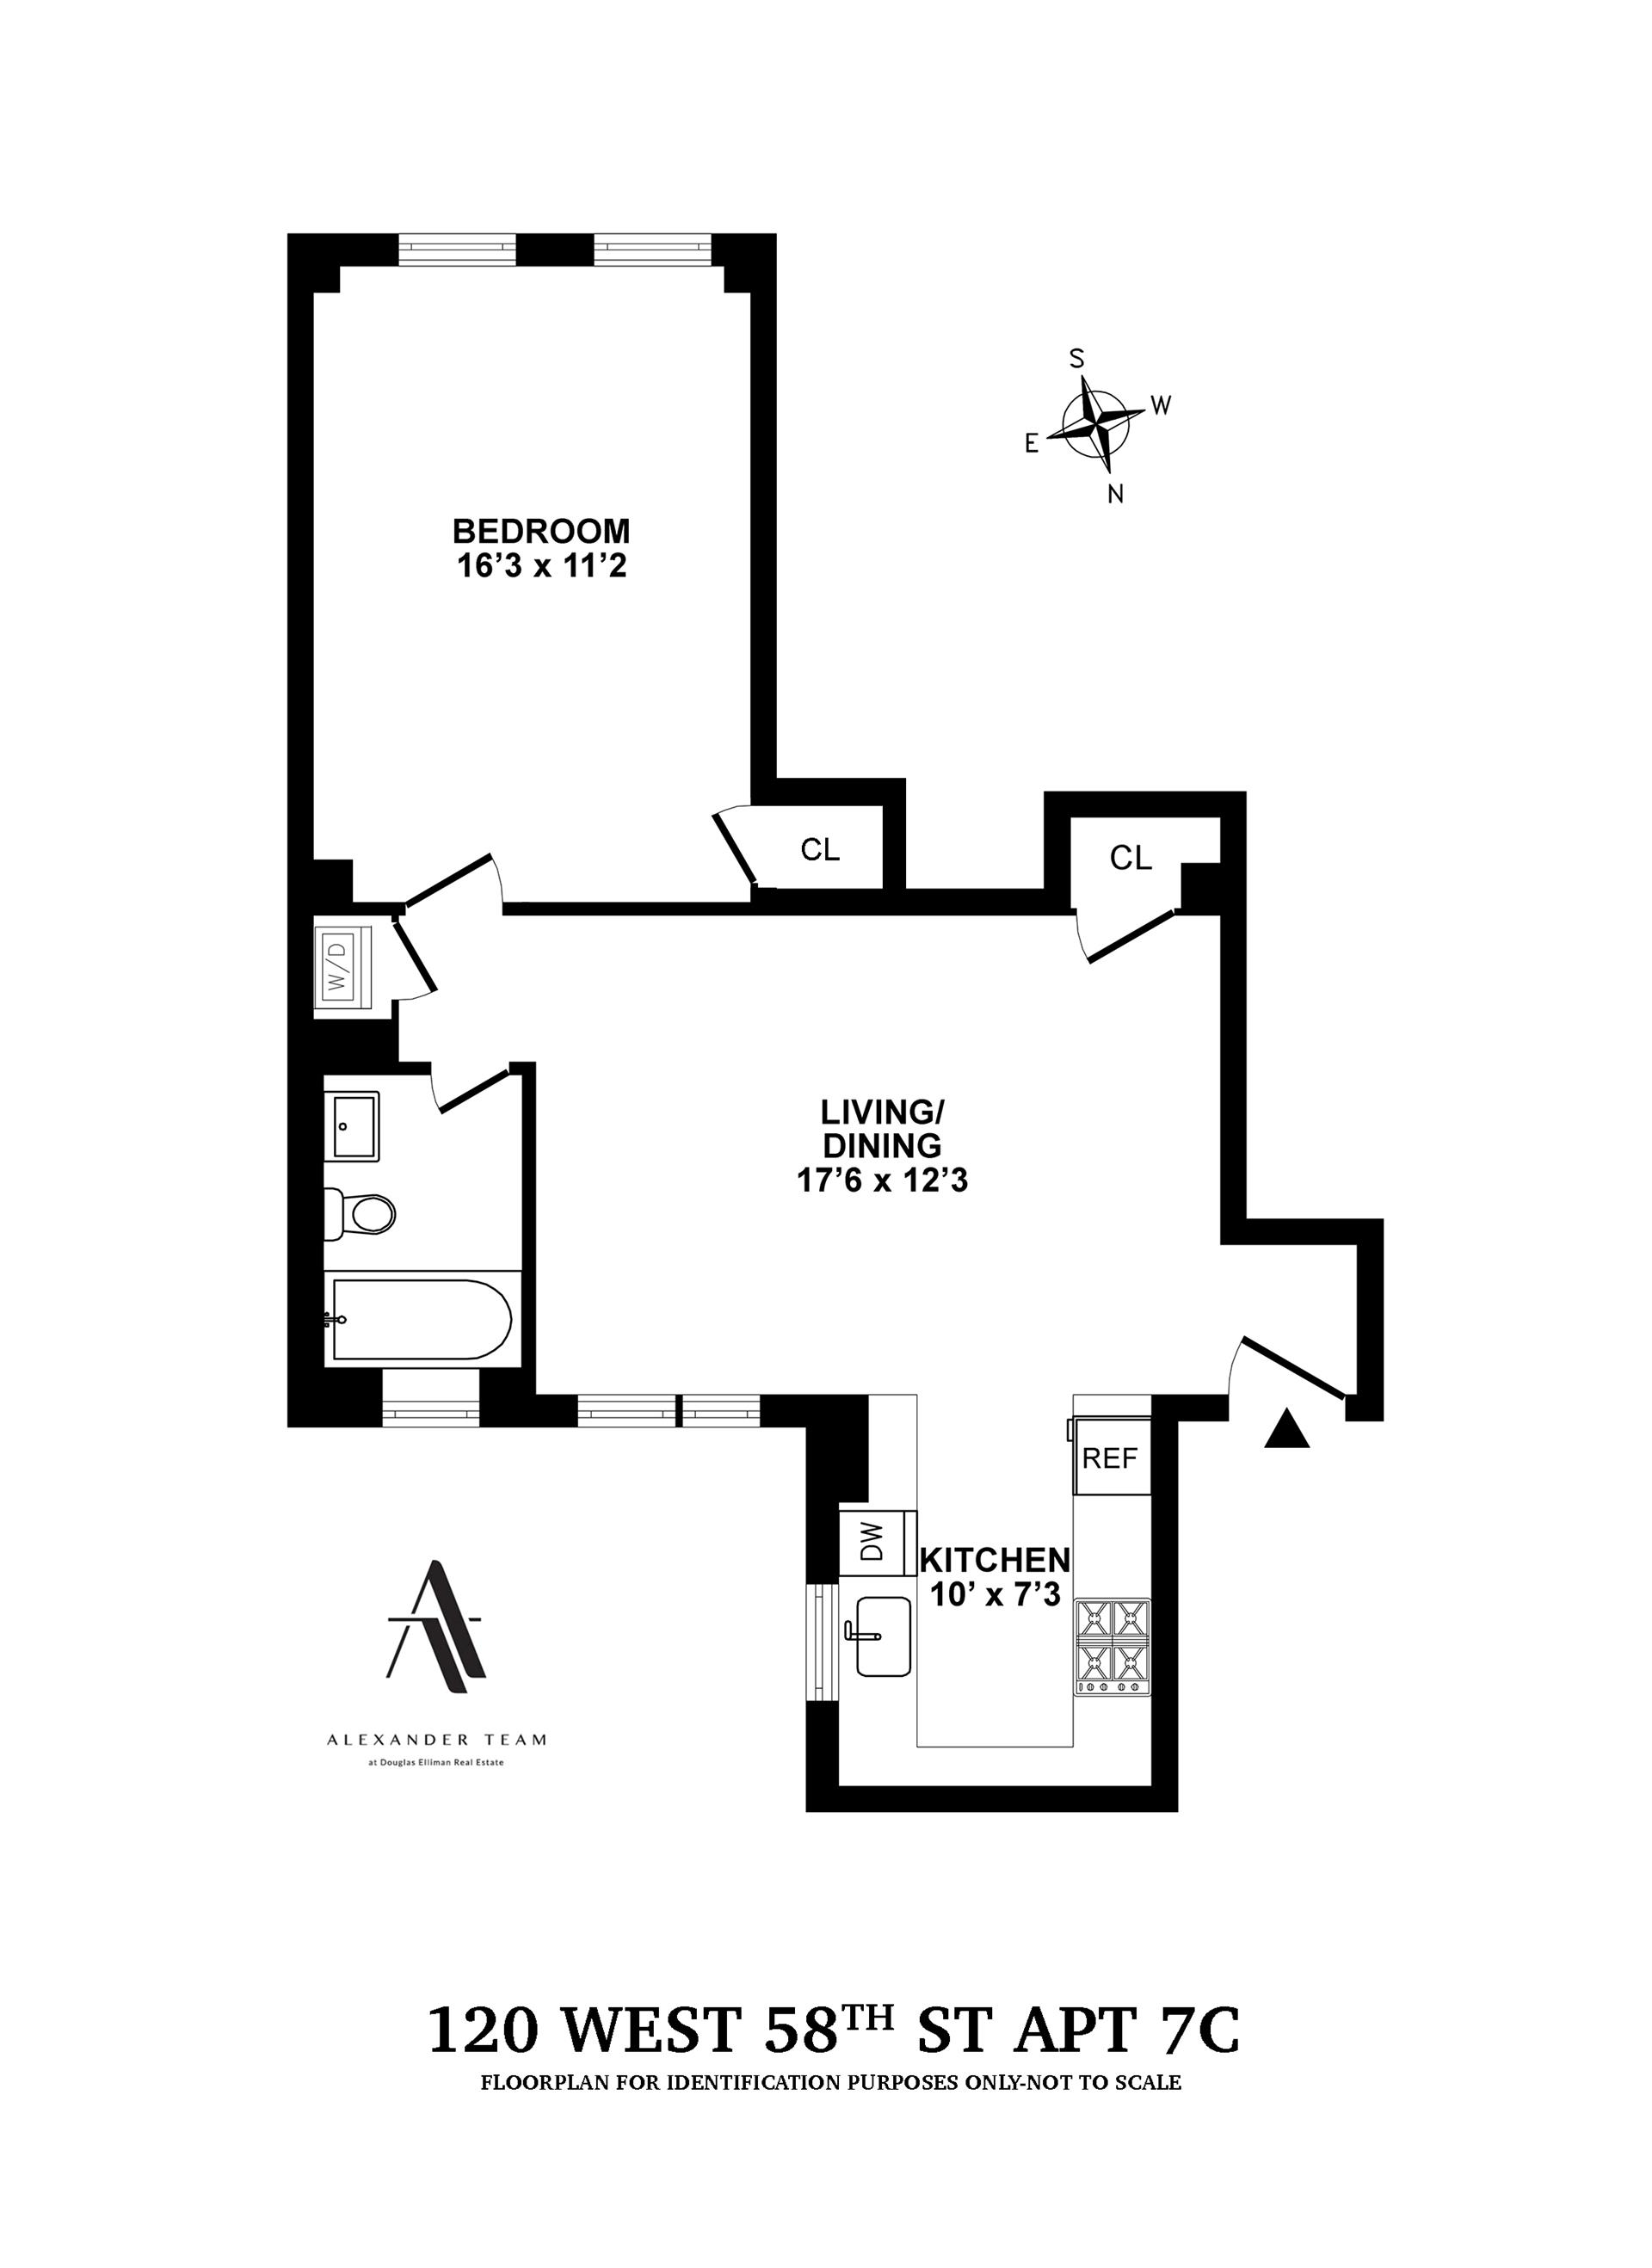 Floor plan of Park South, 120 West 58th St, 7C - Midtown, New York